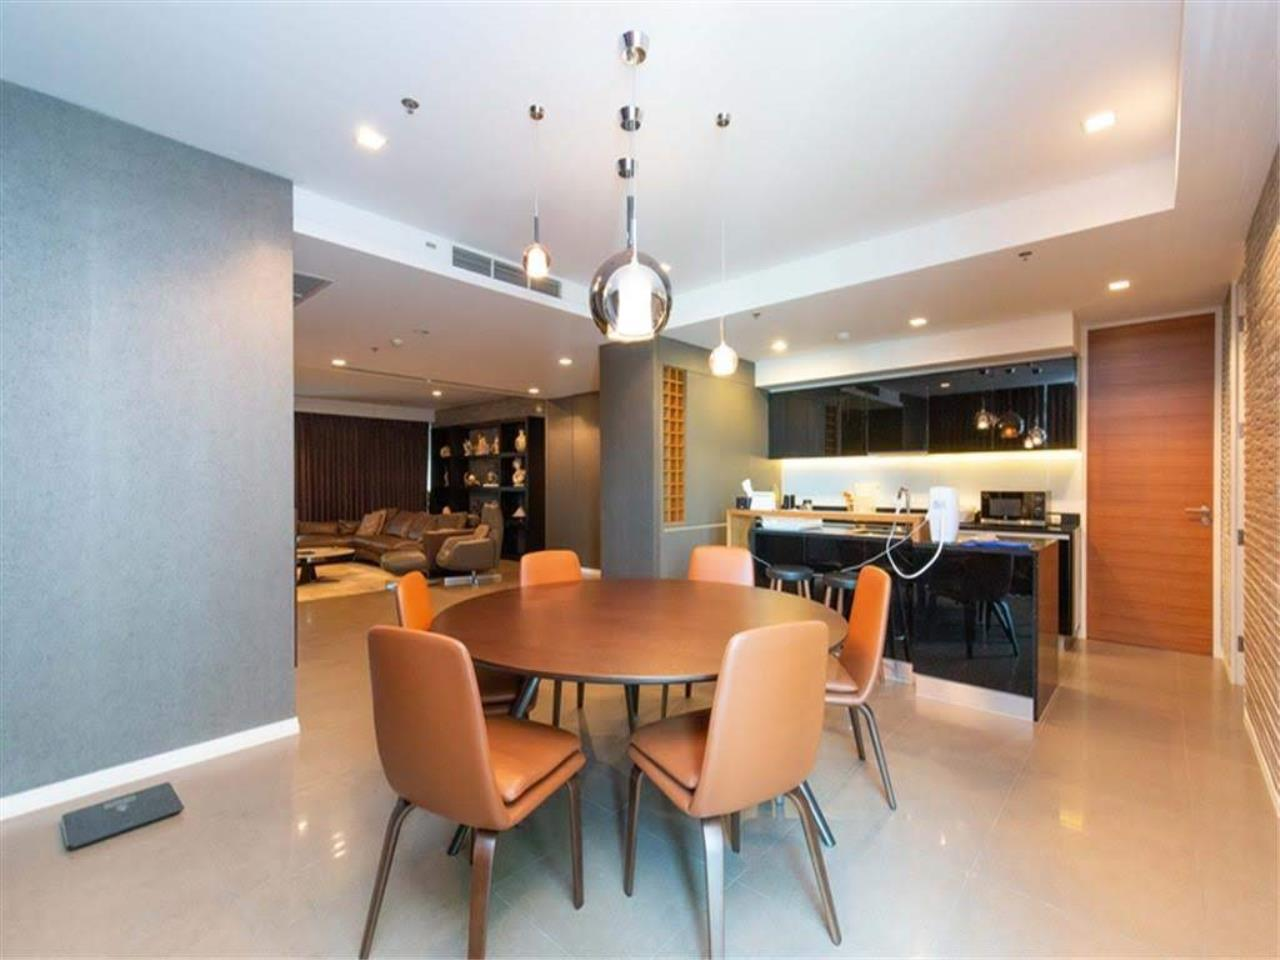 Bestbkkcondos Agency's The River - 233,8 sqm - For Sale : 52 000 000 THB - 3 Bedrooms 14